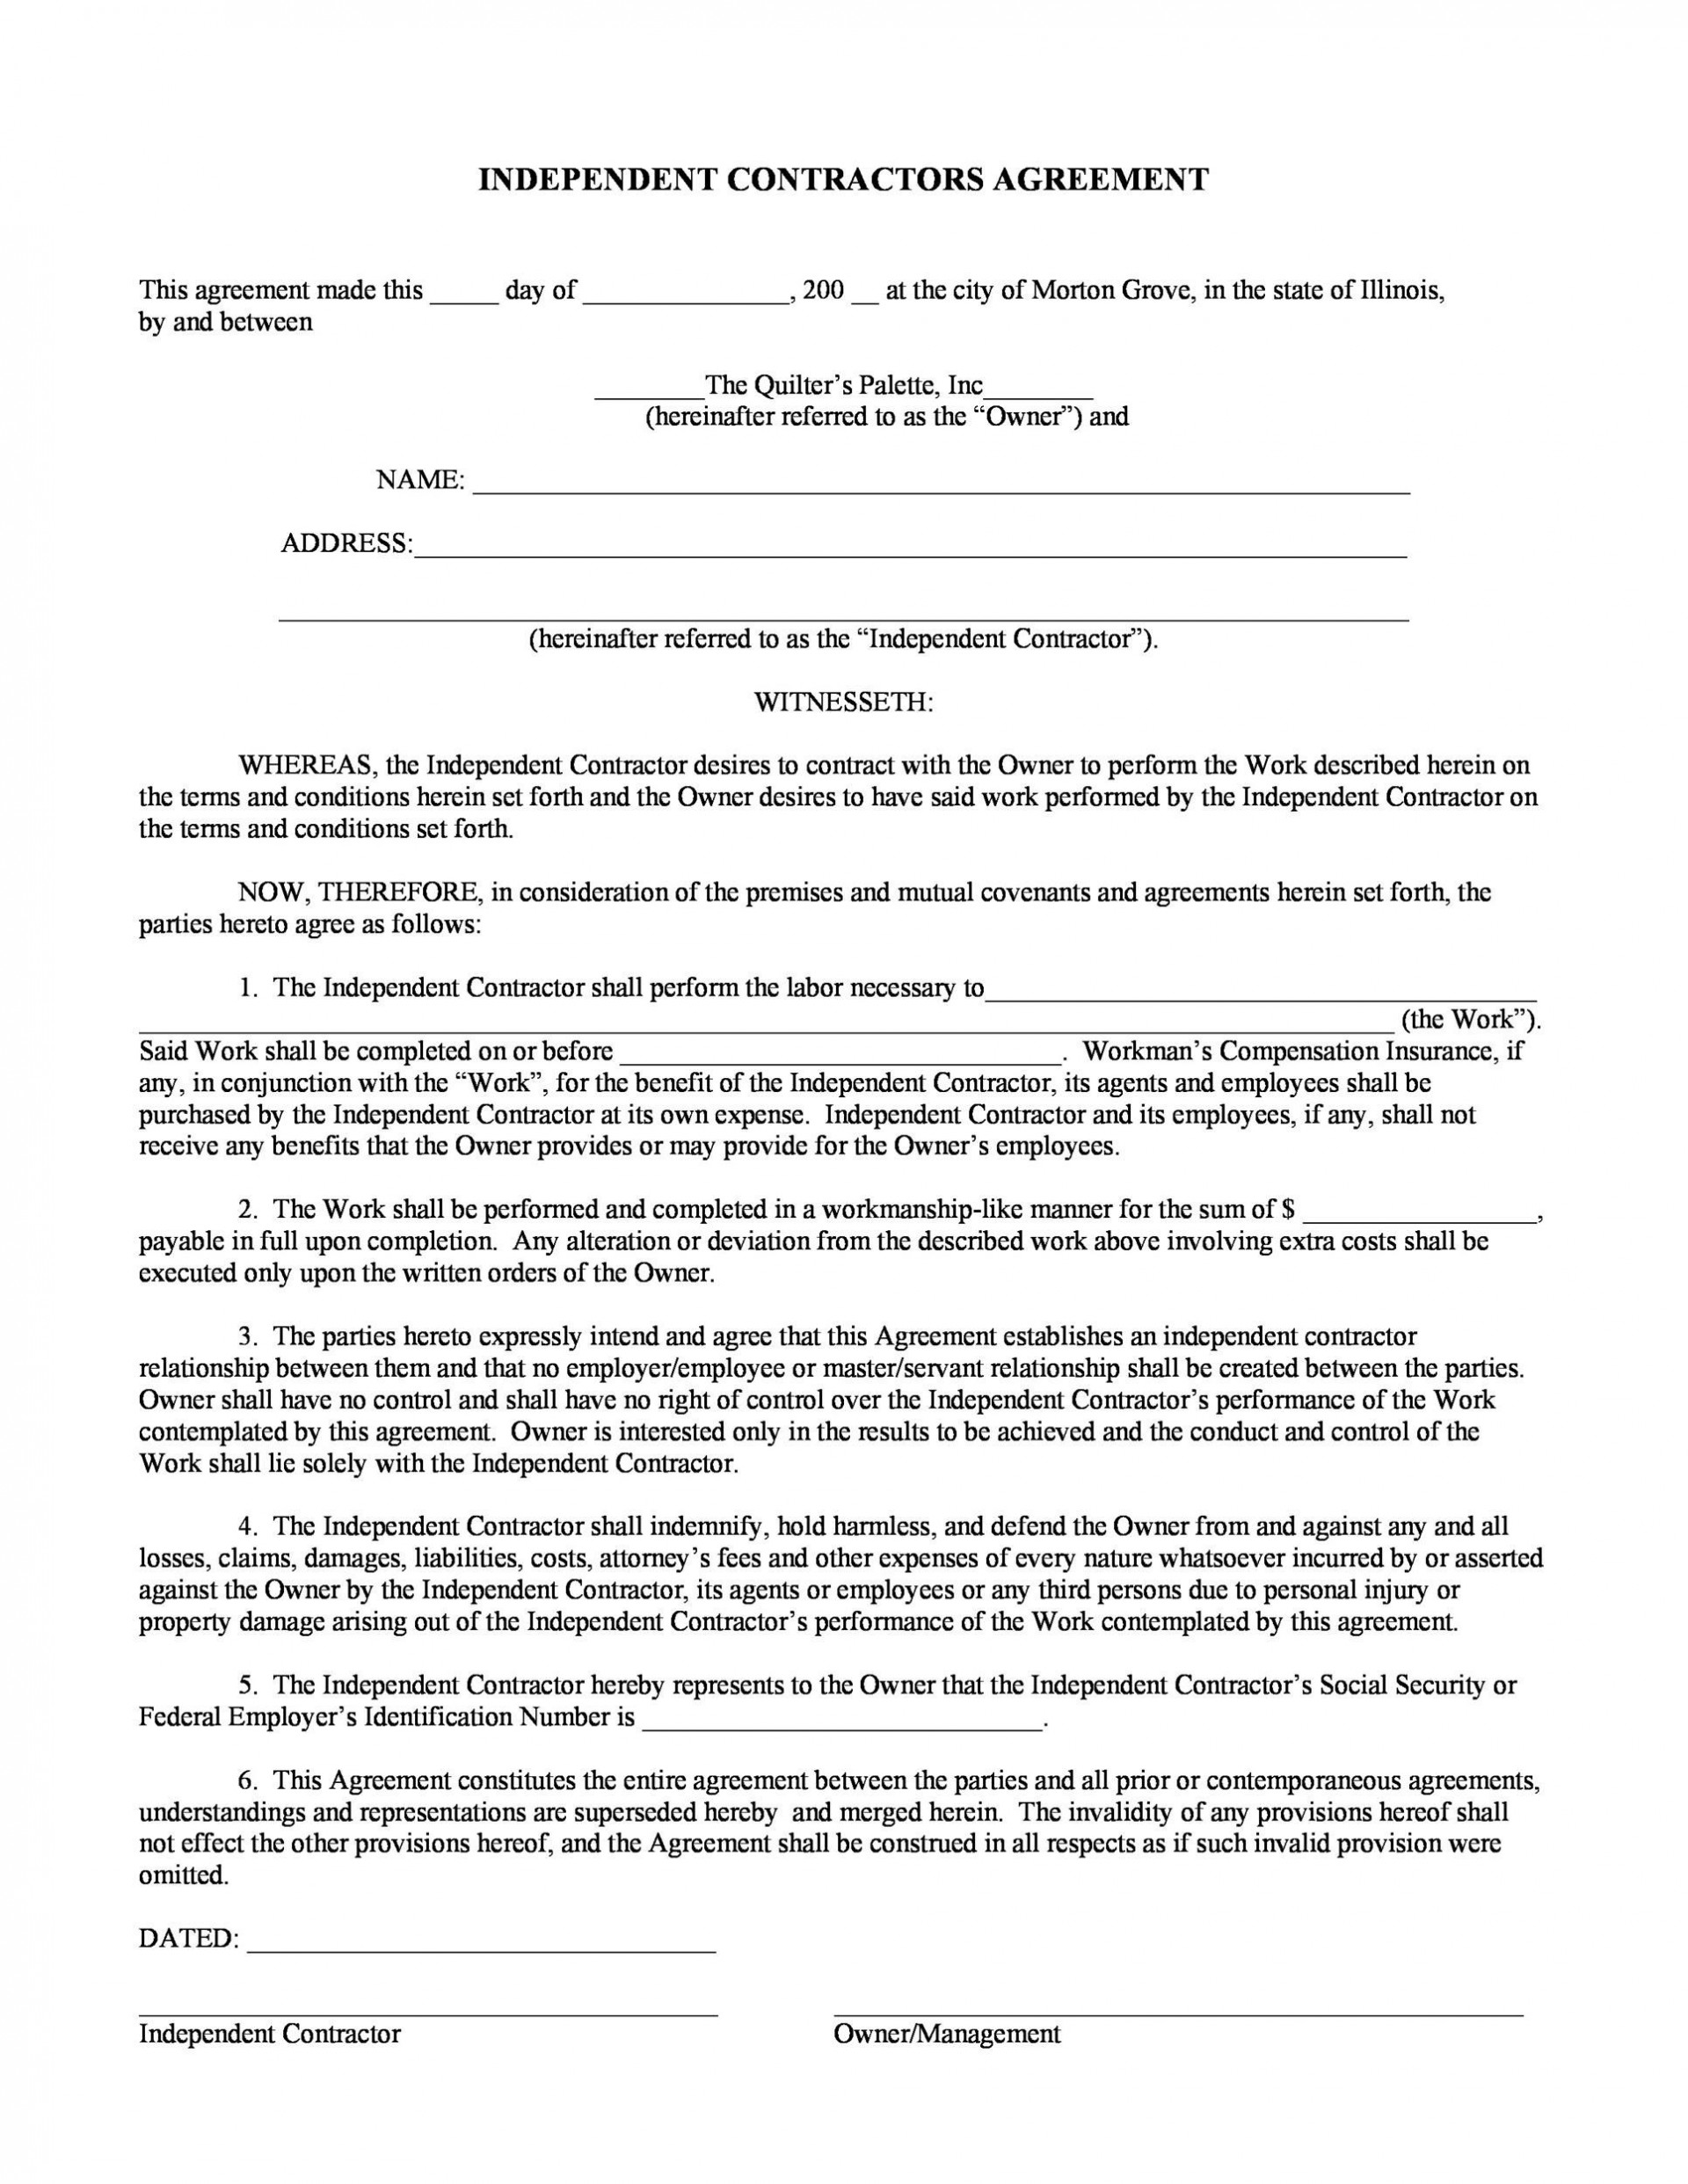 004 Singular Independent Consultant Contract Template High Def  Free Contractor Consulting Agreement South Africa1920